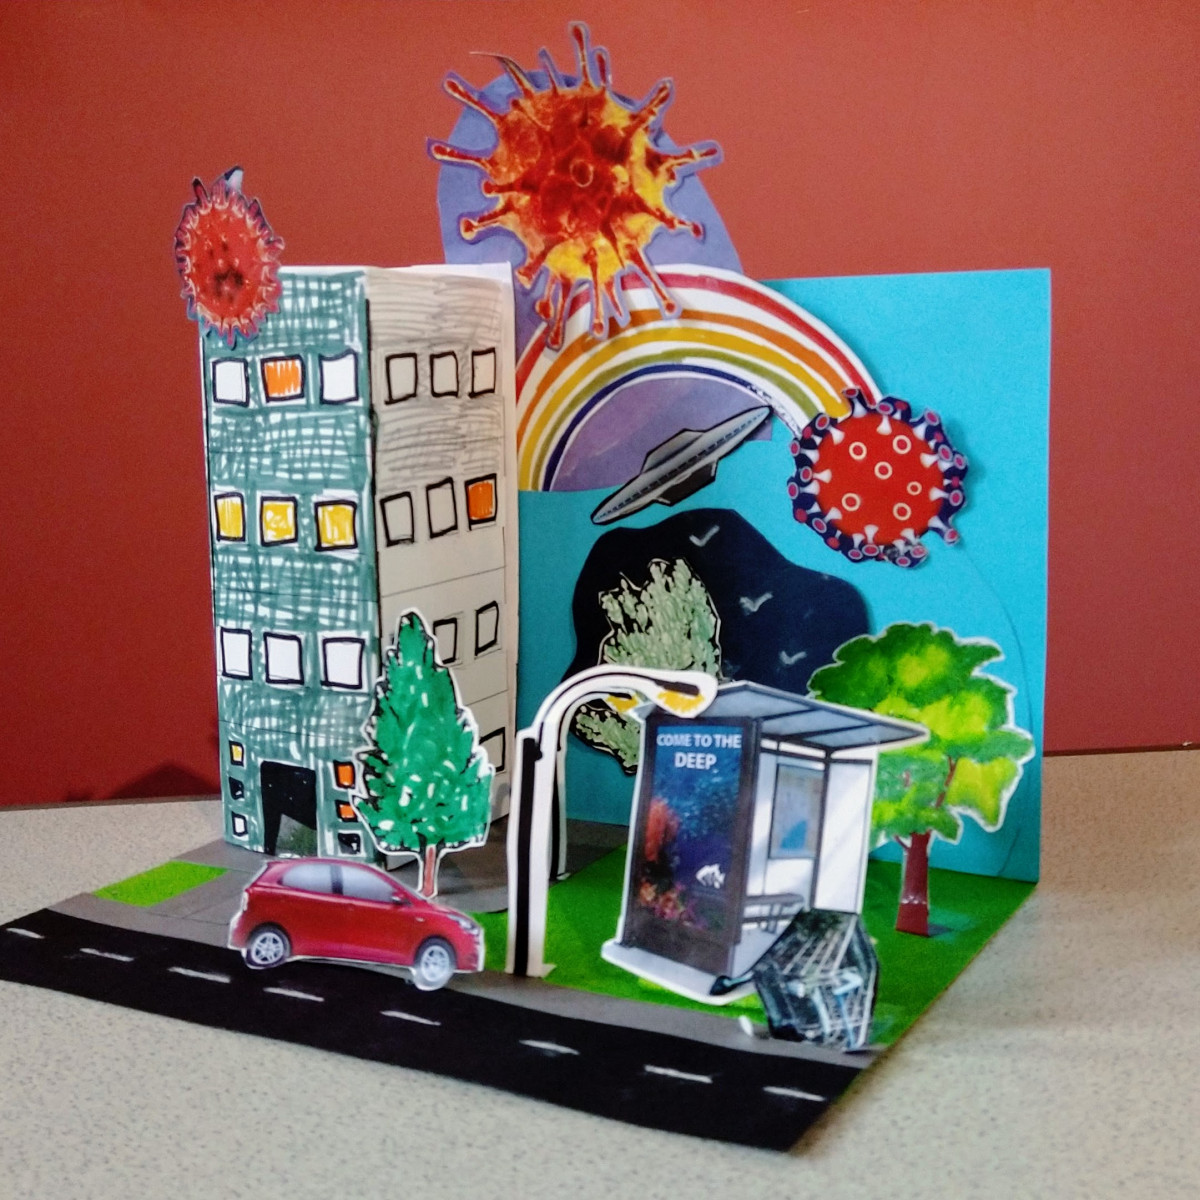 """""""Covid Over the Rainbow"""" - a 3D cardcraft activity which includes a towerblock, bus stop, flying saucer, rainbow and Covid virus cutouts"""